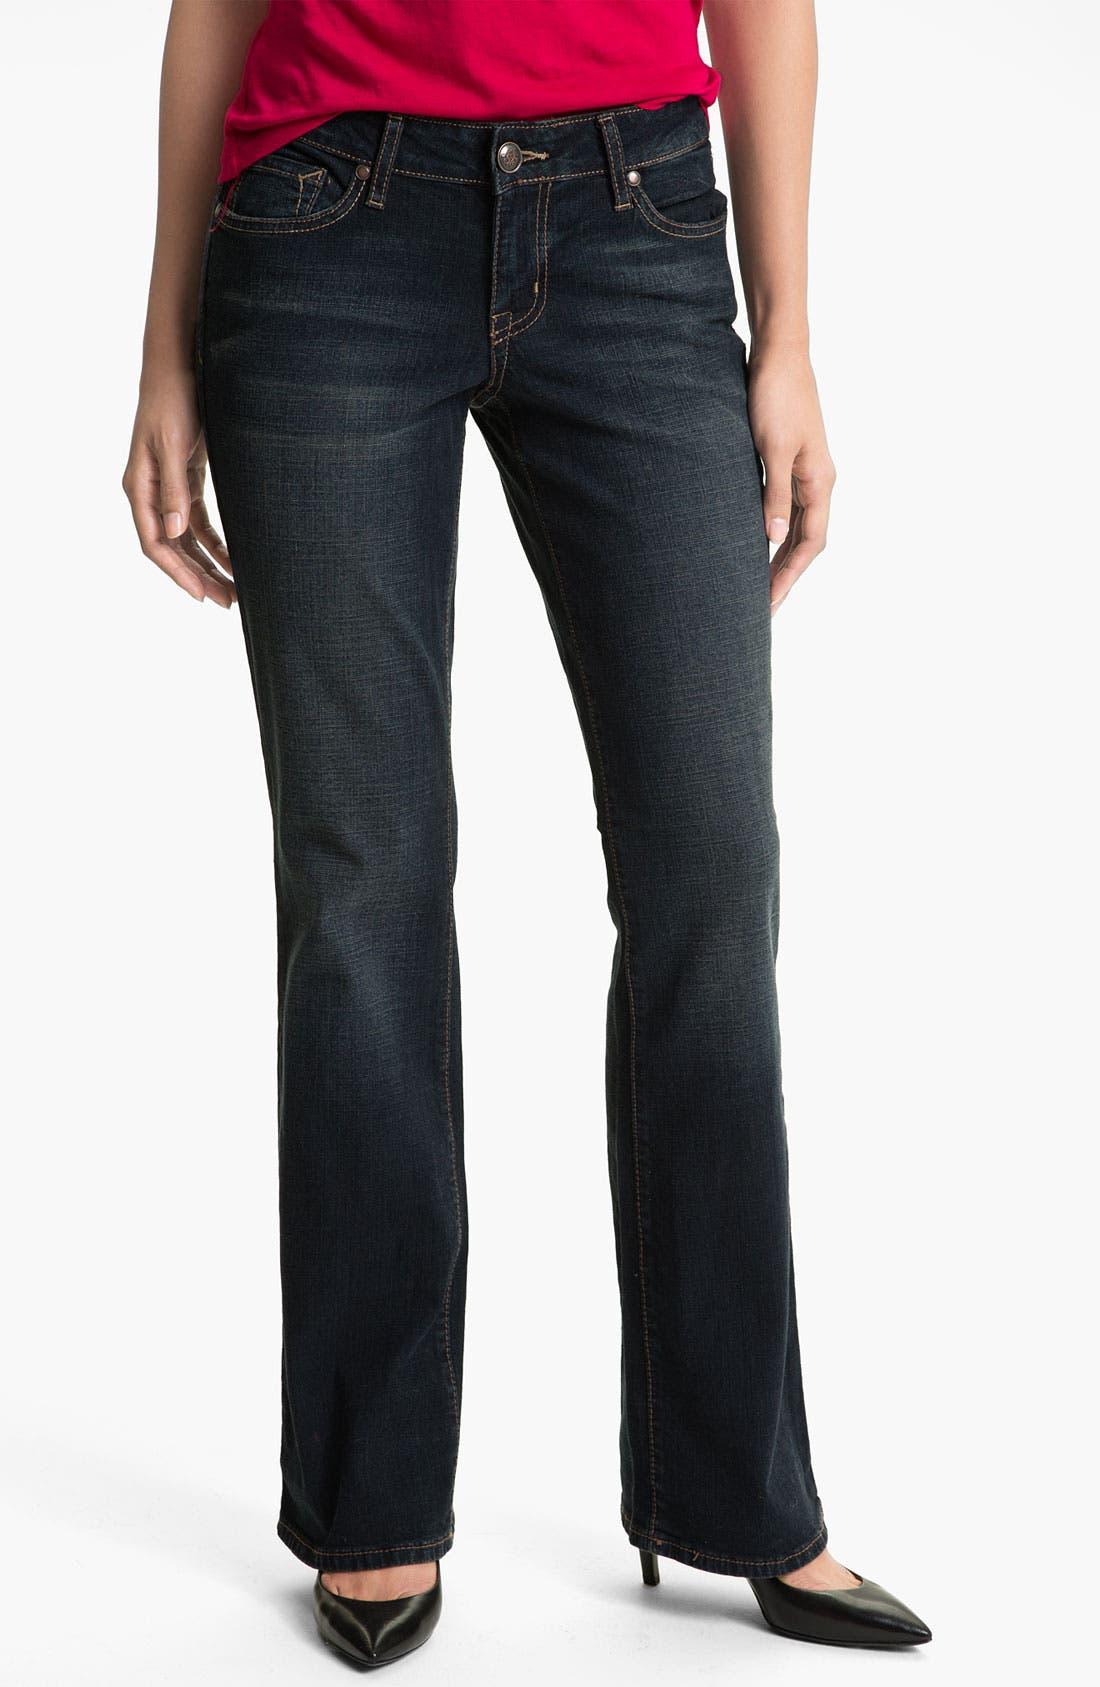 Main Image - Jessica Simpson 'Rockin' Curvy Bootcut Jeans (Mariana Stanton)